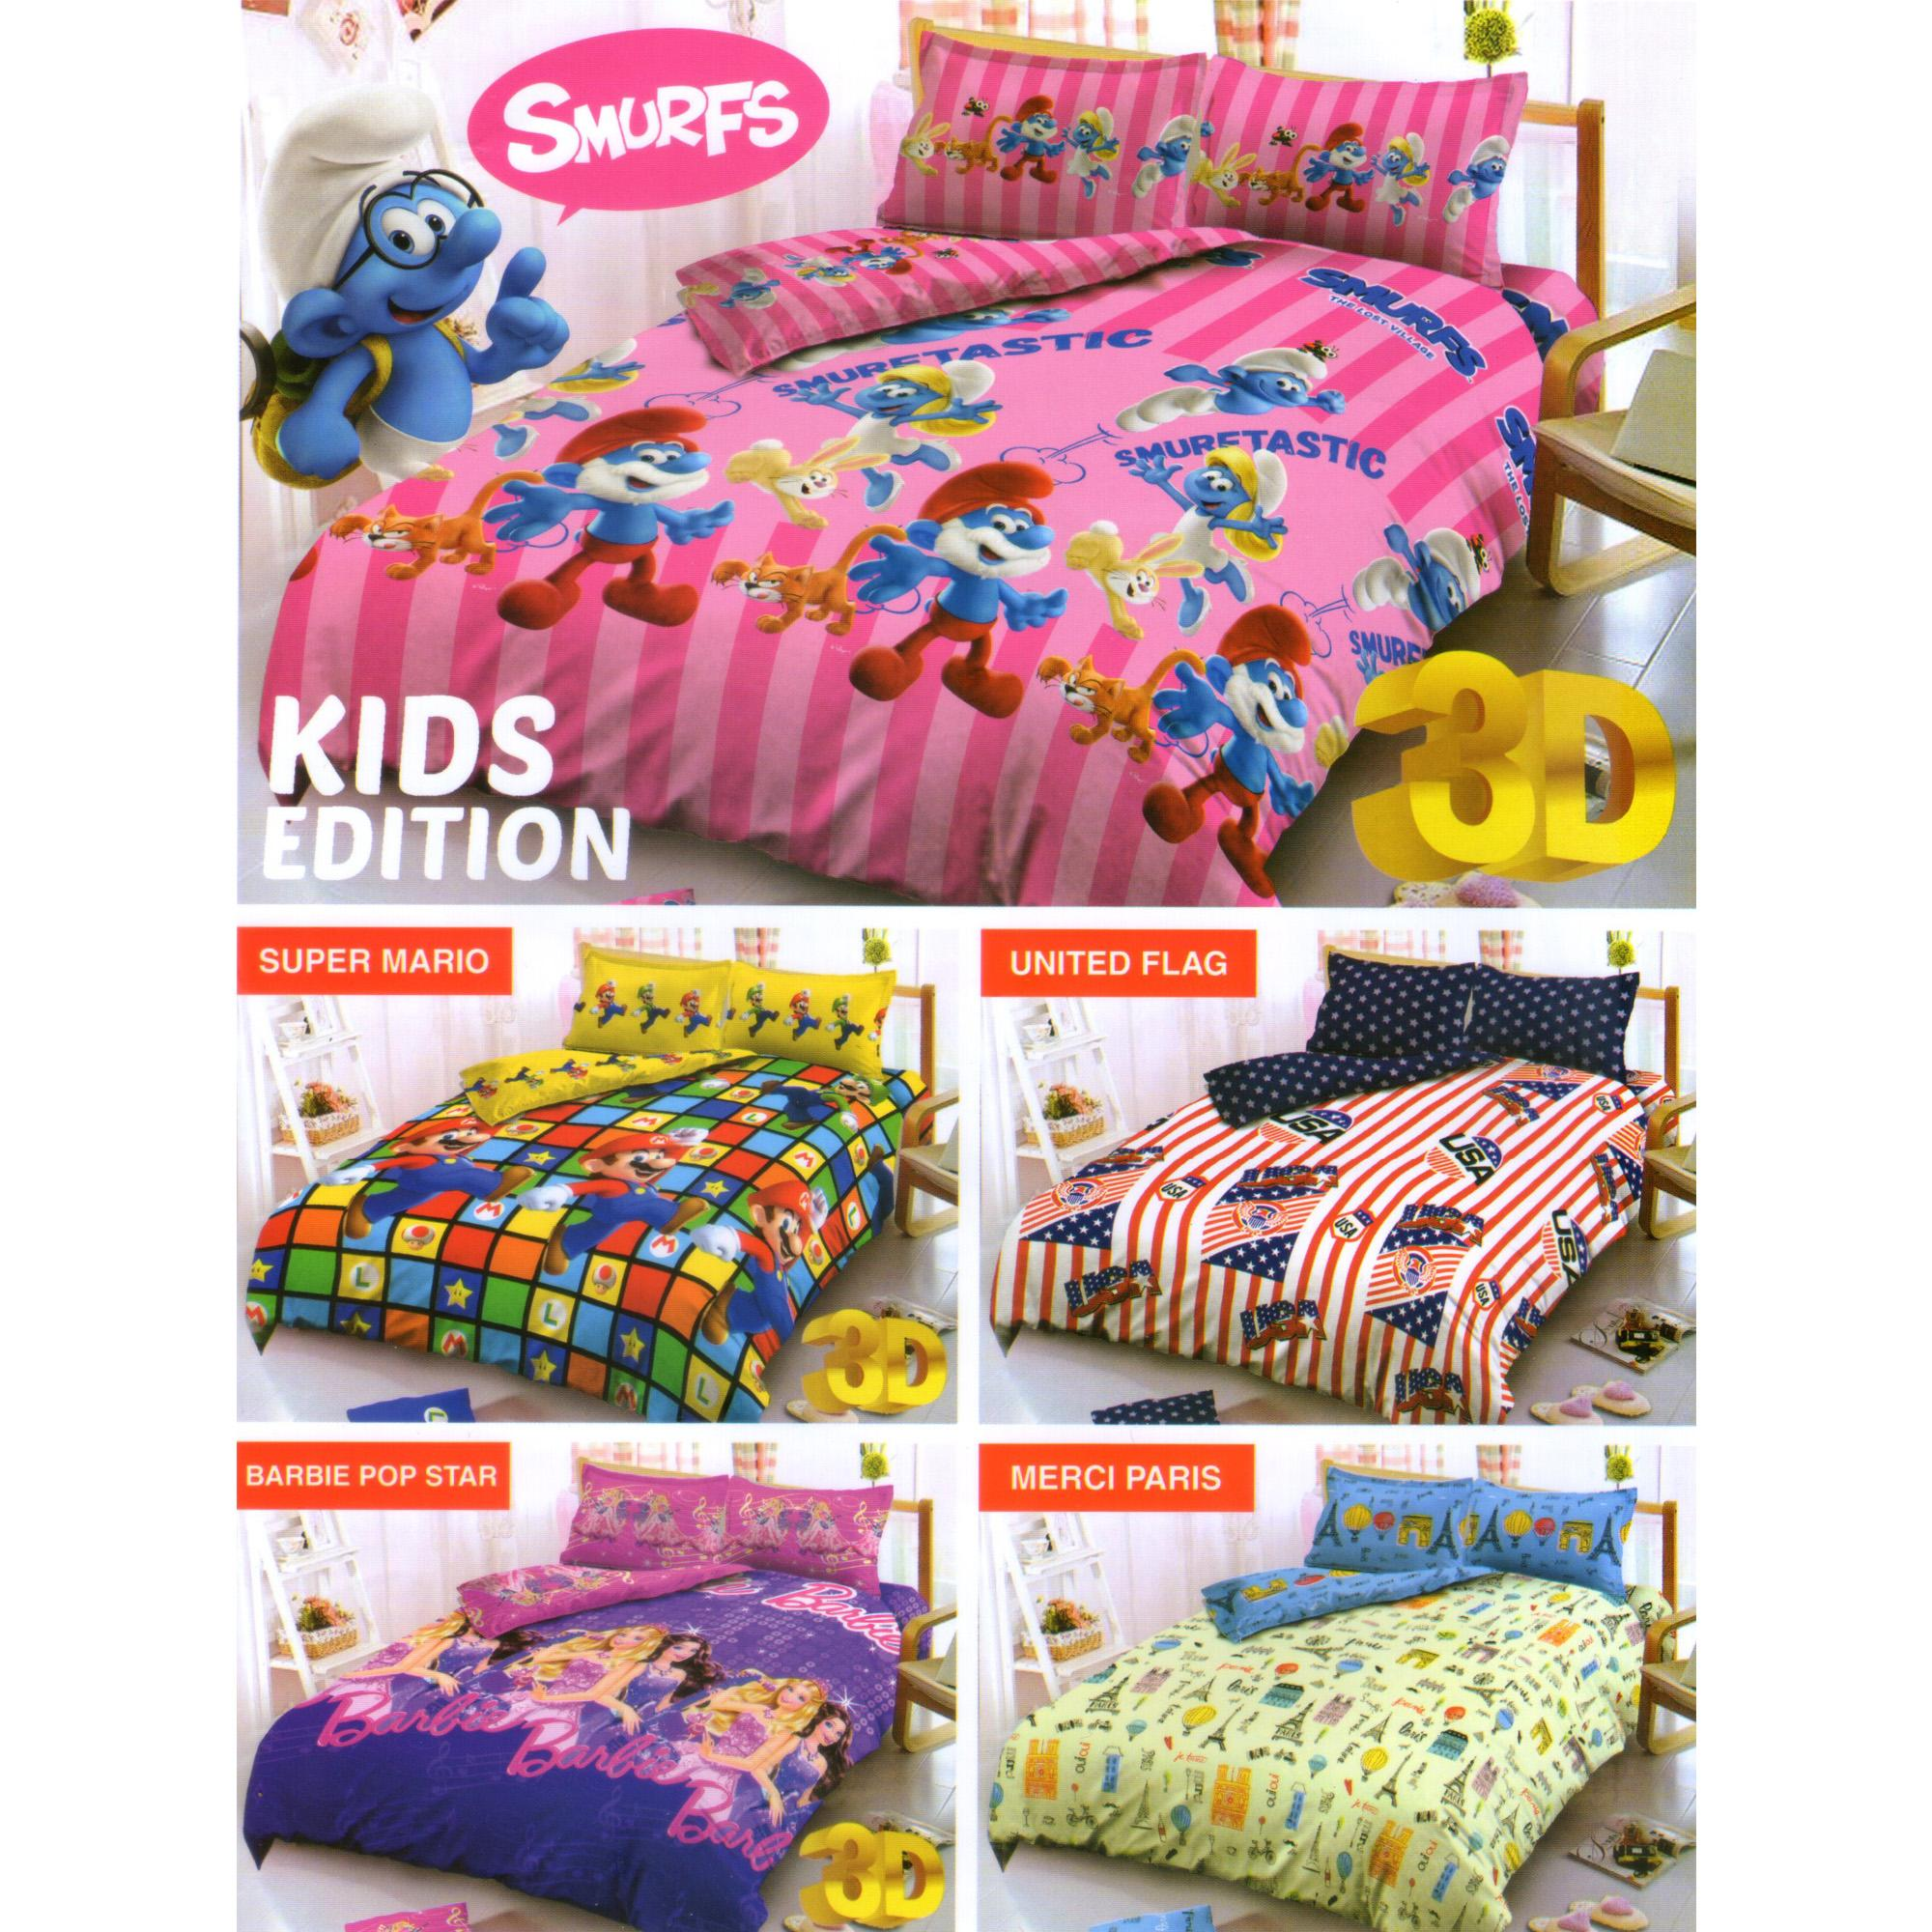 Kelebihan Kintakun Dluxe Sprei Set Barcelona 2017 Terkini Daftar 2in1 120 X 200 Single United Flag 5